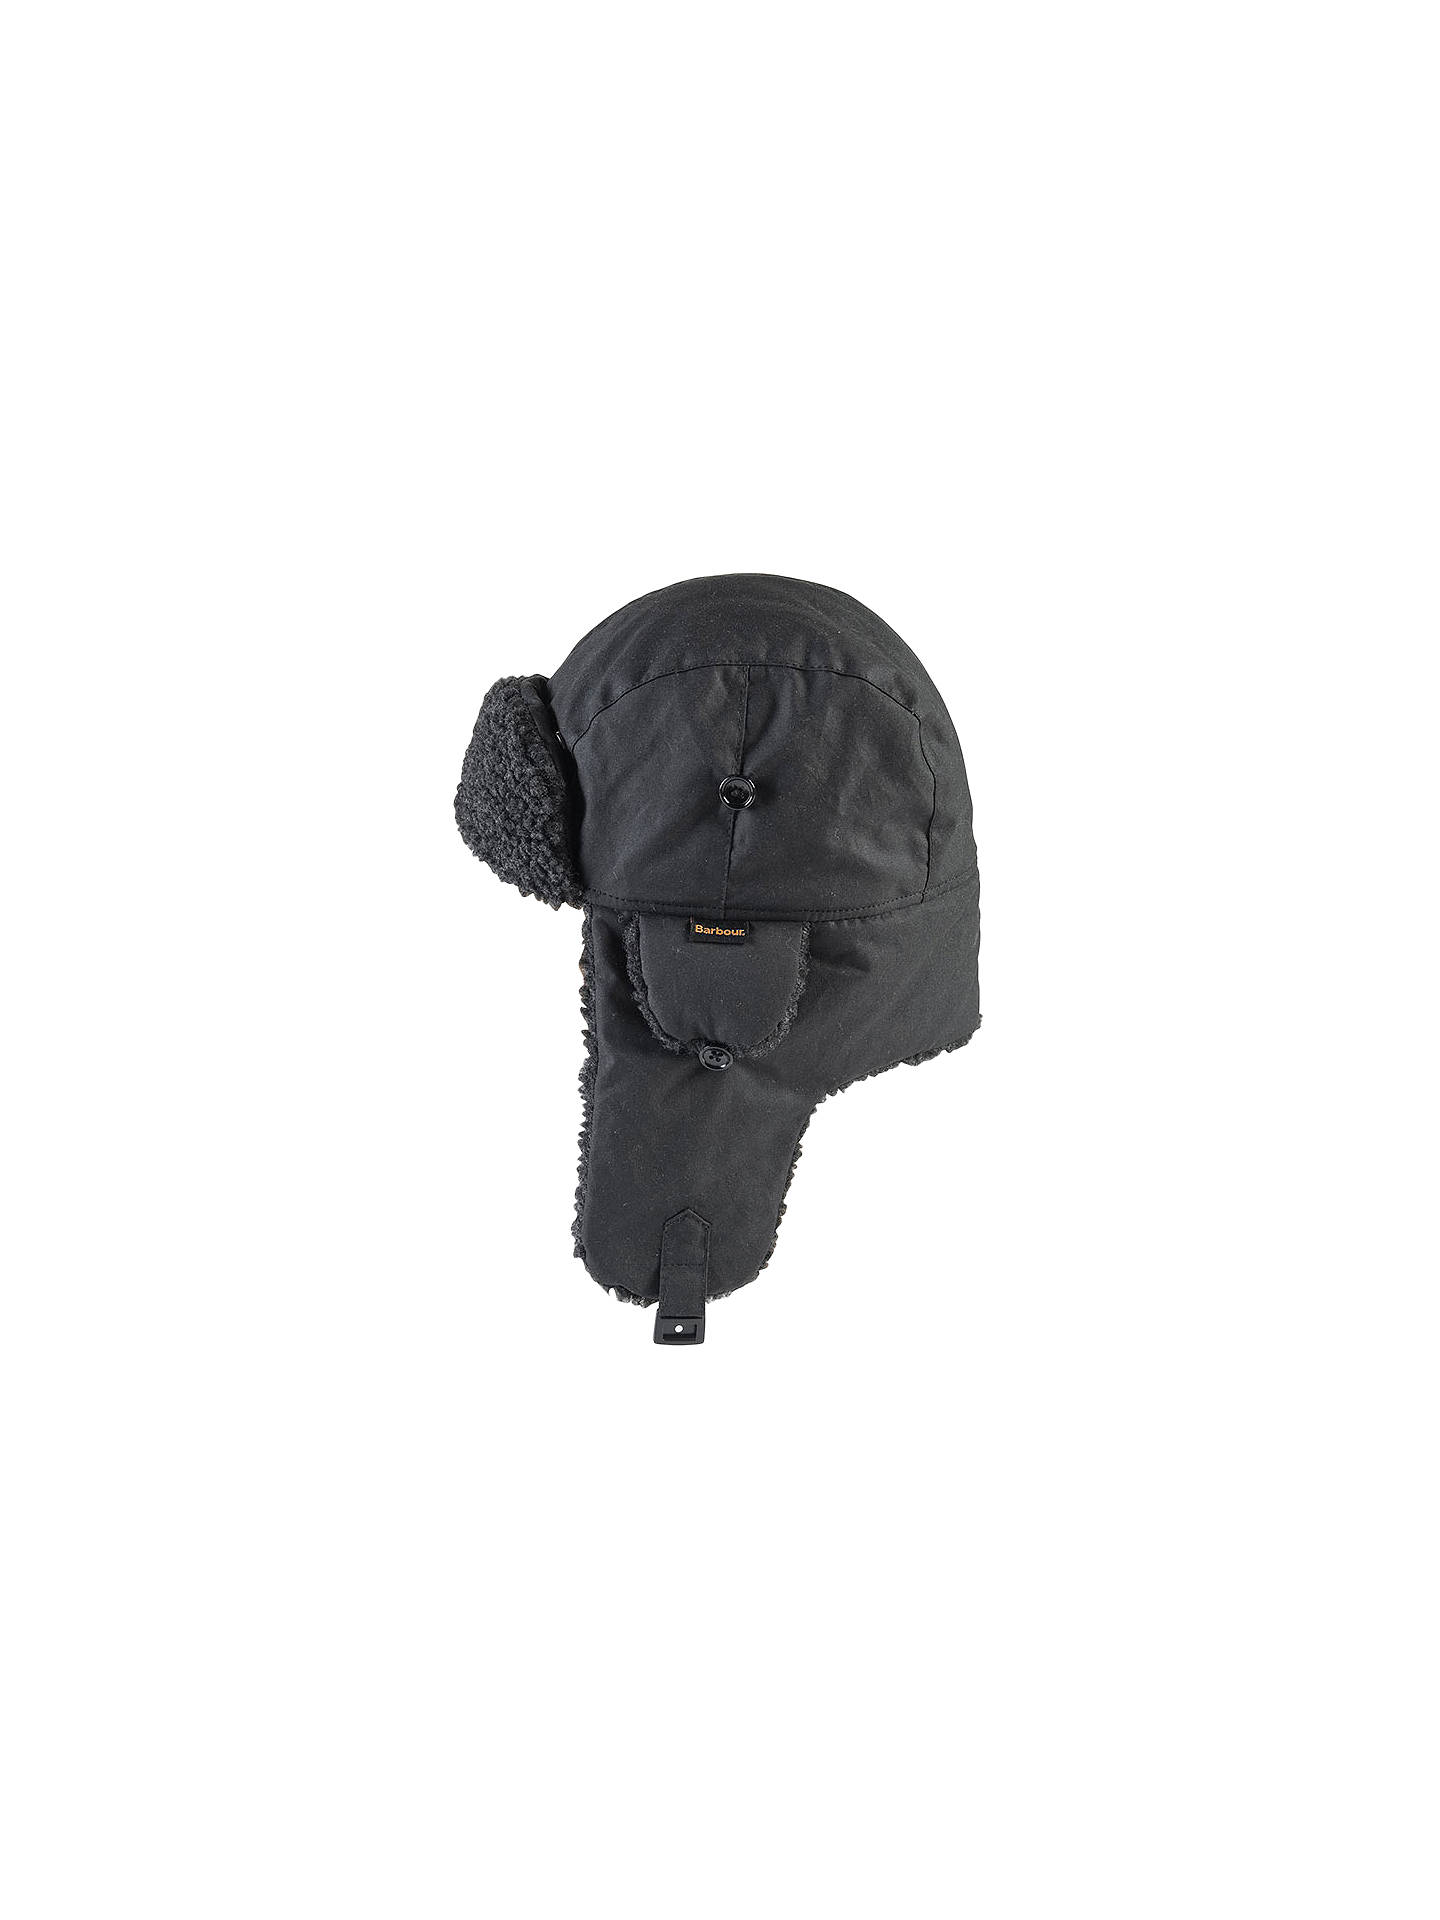 cd354a0dd75a2 Buy Barbour Fleece Lined Tapper Hat, Black, M Online at johnlewis.com ...